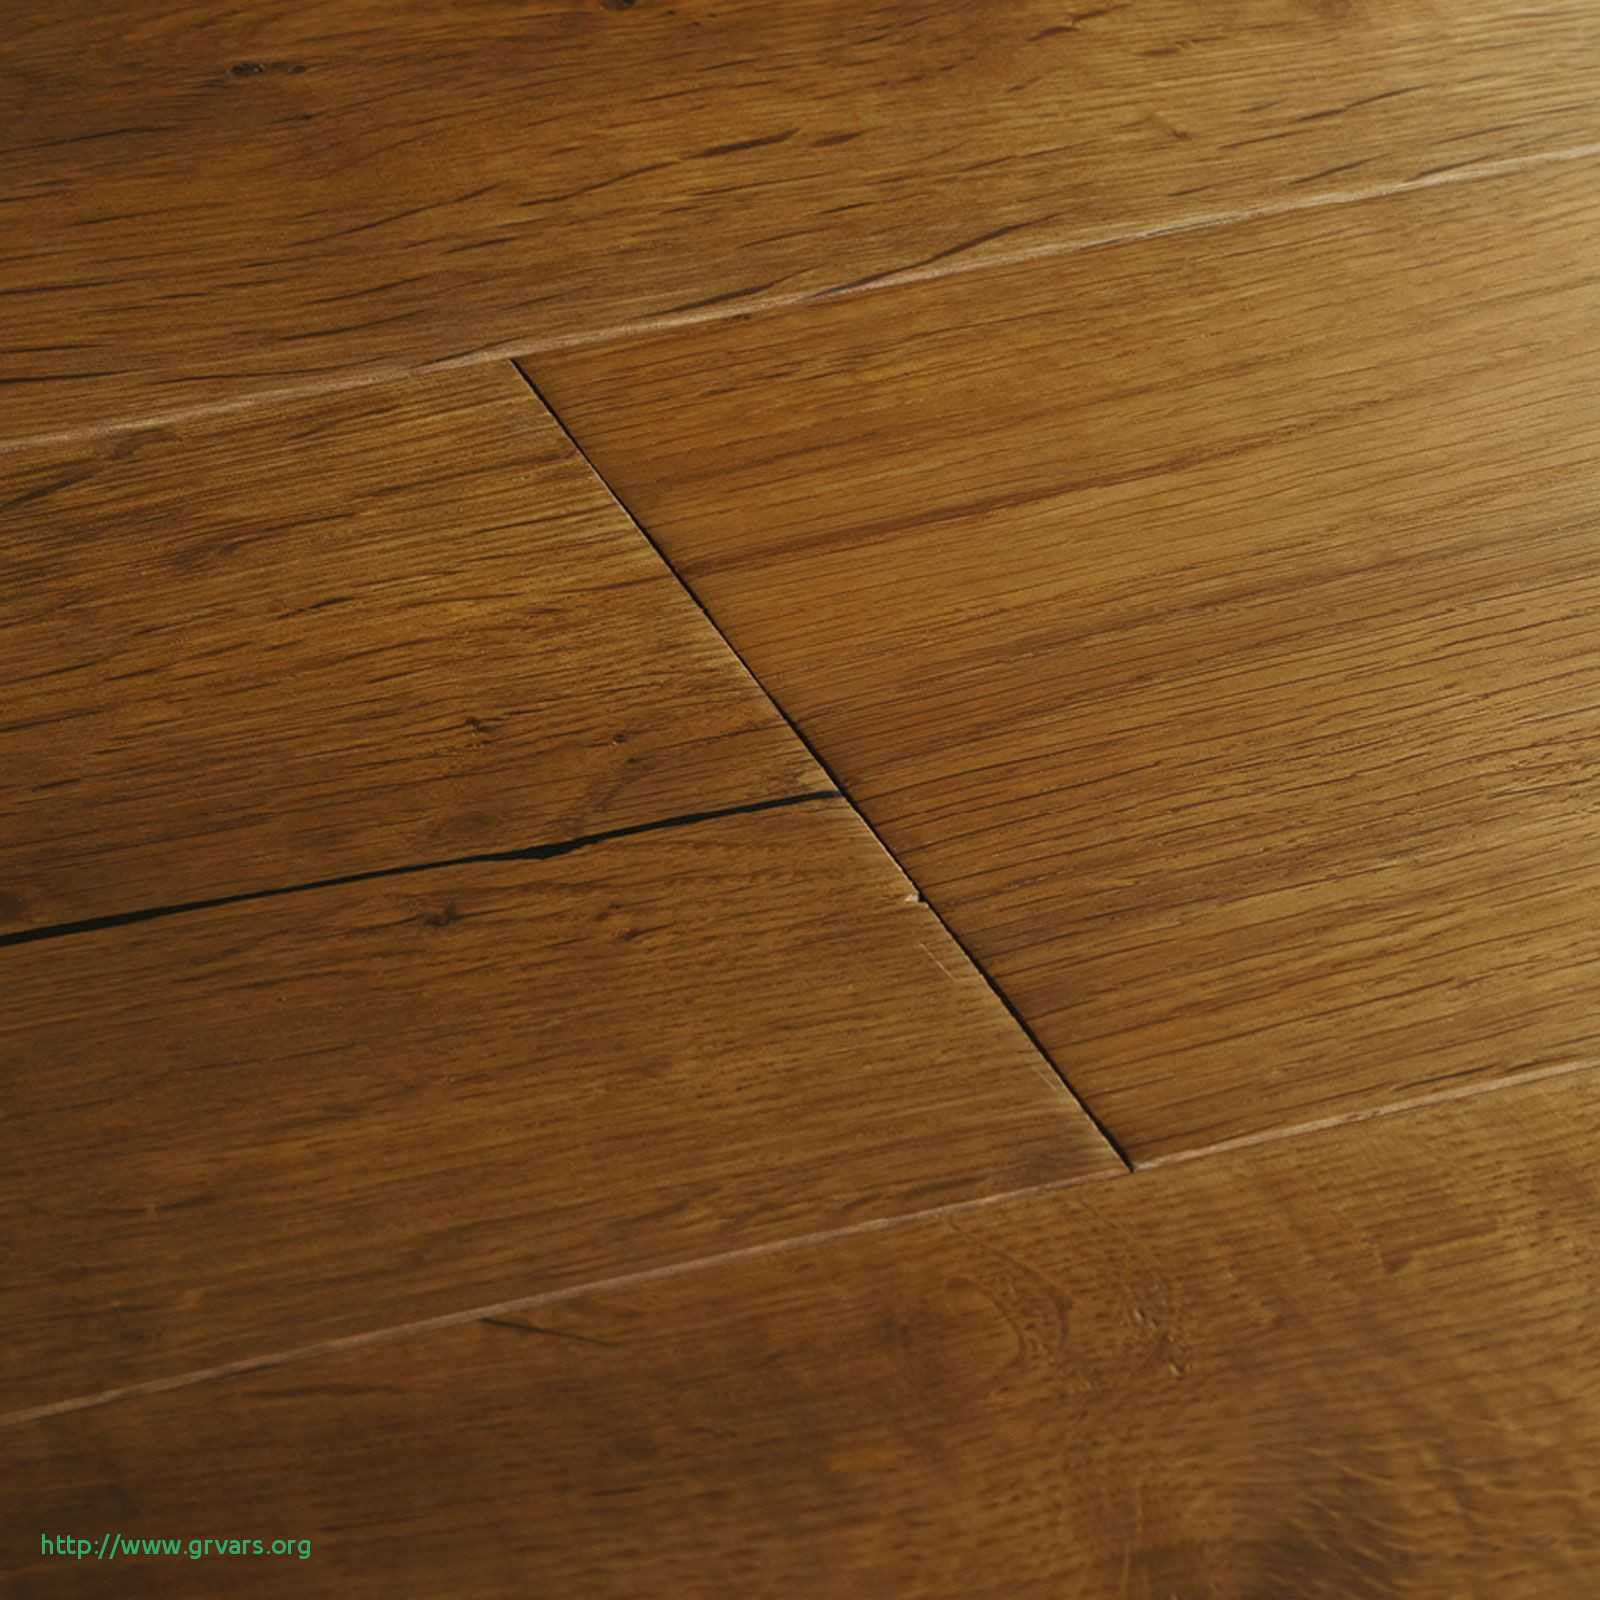 laying hardwood floors diy of 22 impressionnant can laminate flooring be laid over tiles ideas blog inside can laminate flooring be laid over tiles charmant laying laminate flooring can you lay laminate flooring